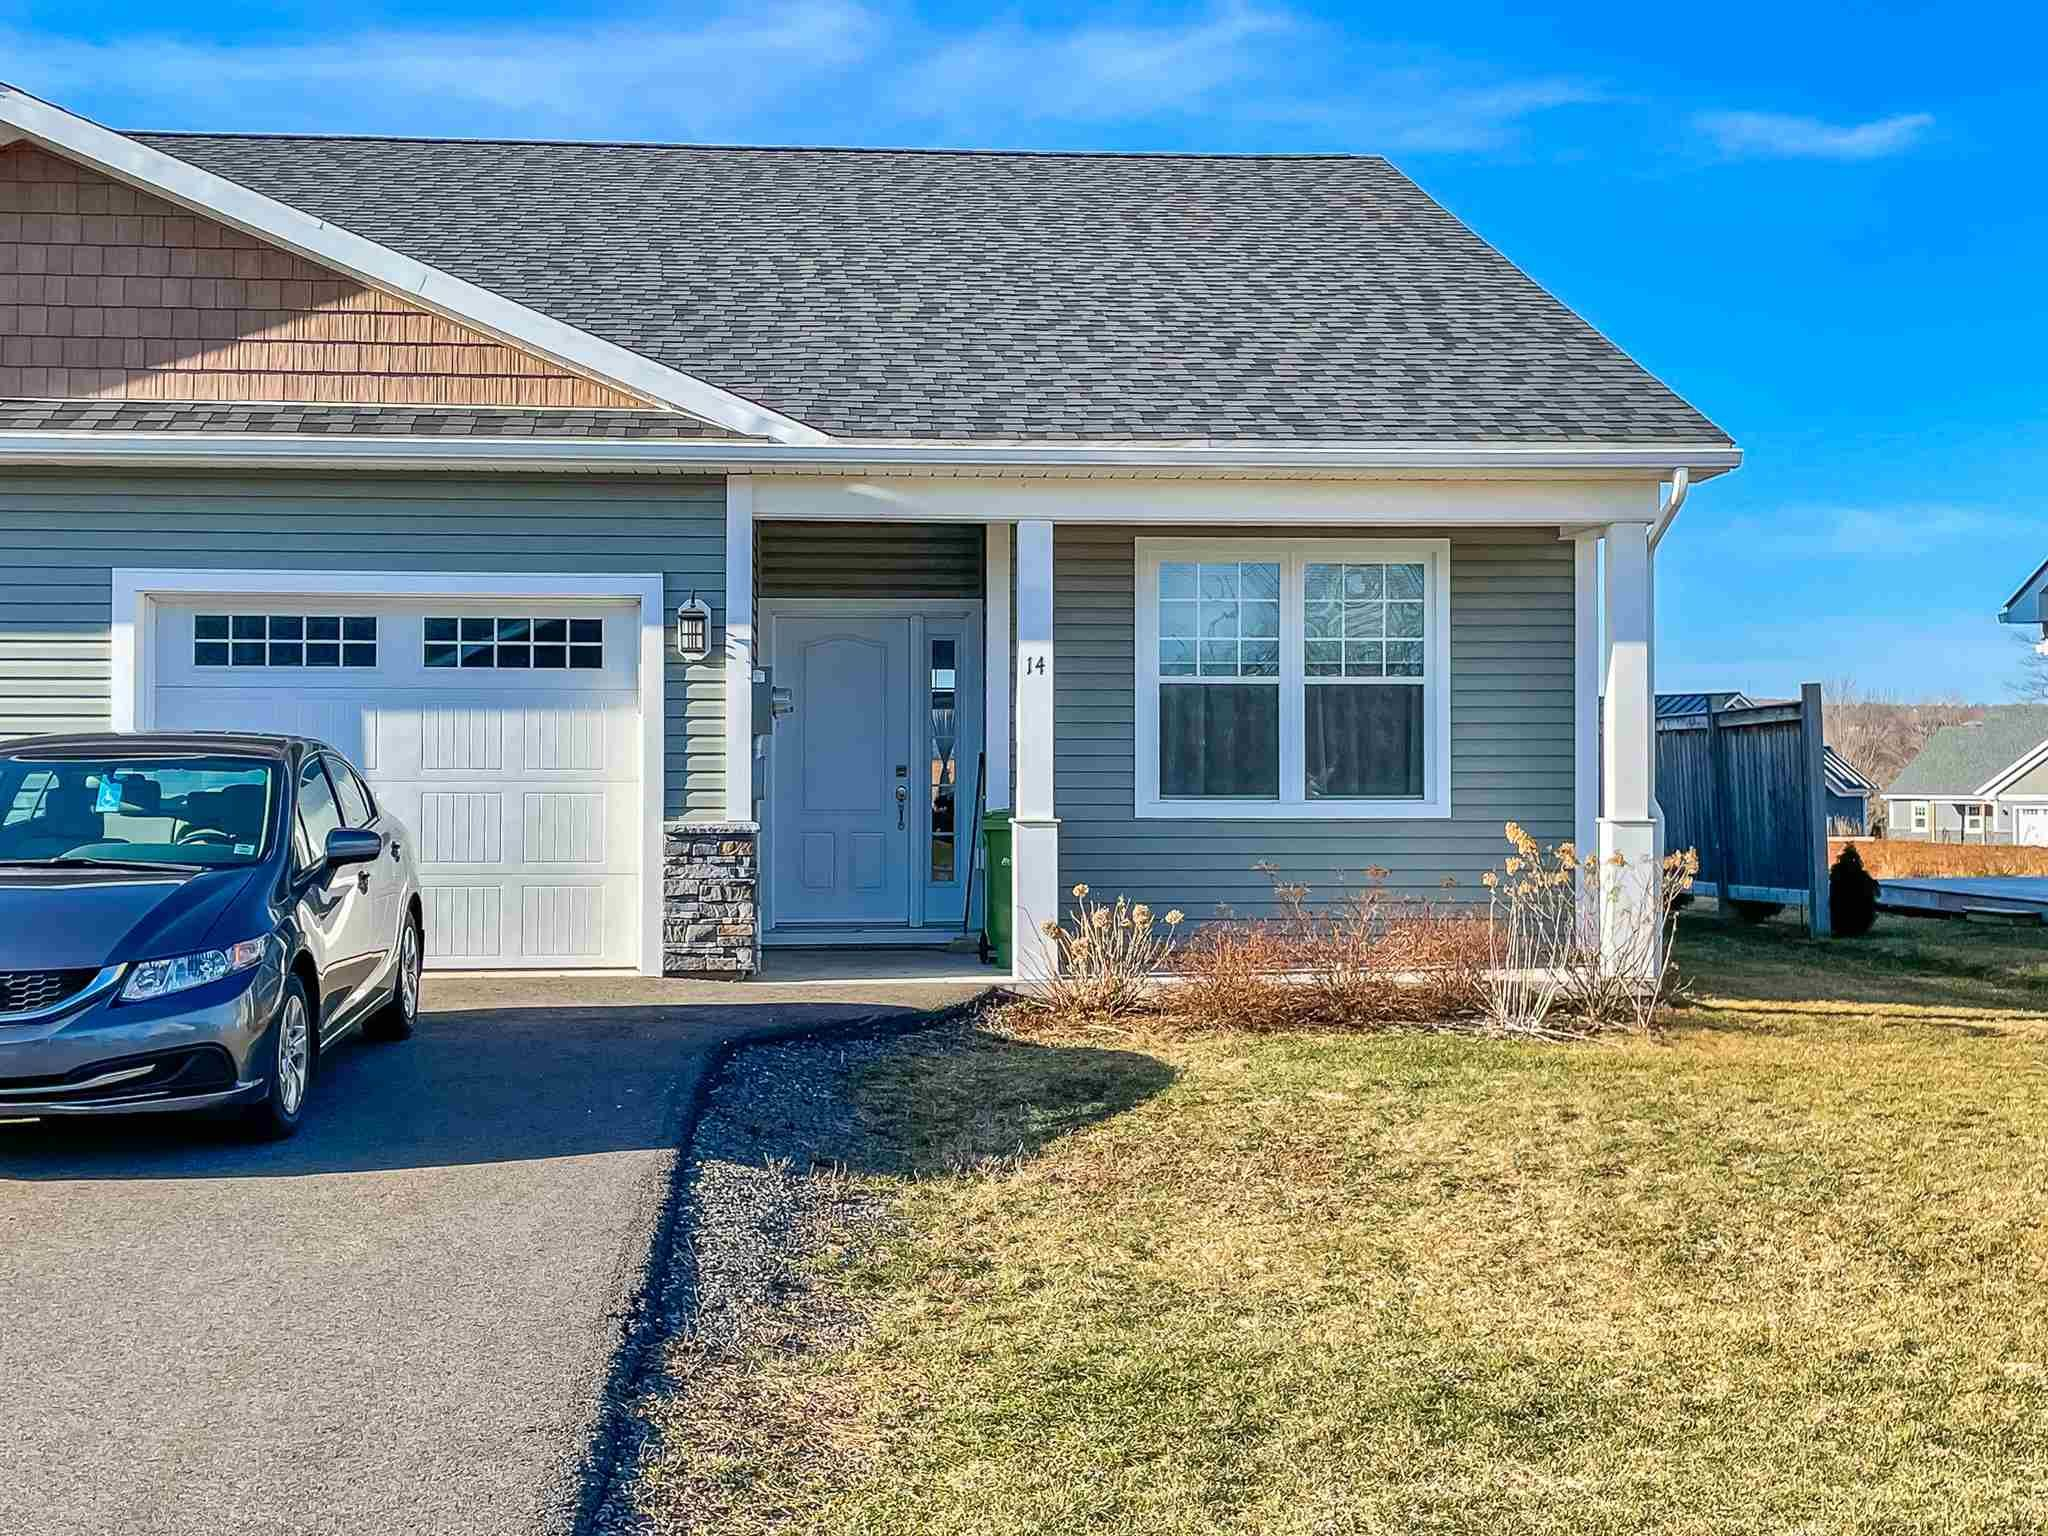 Main Photo: 14 Mackinnon Court in Kentville: 404-Kings County Residential for sale (Annapolis Valley)  : MLS®# 202107289